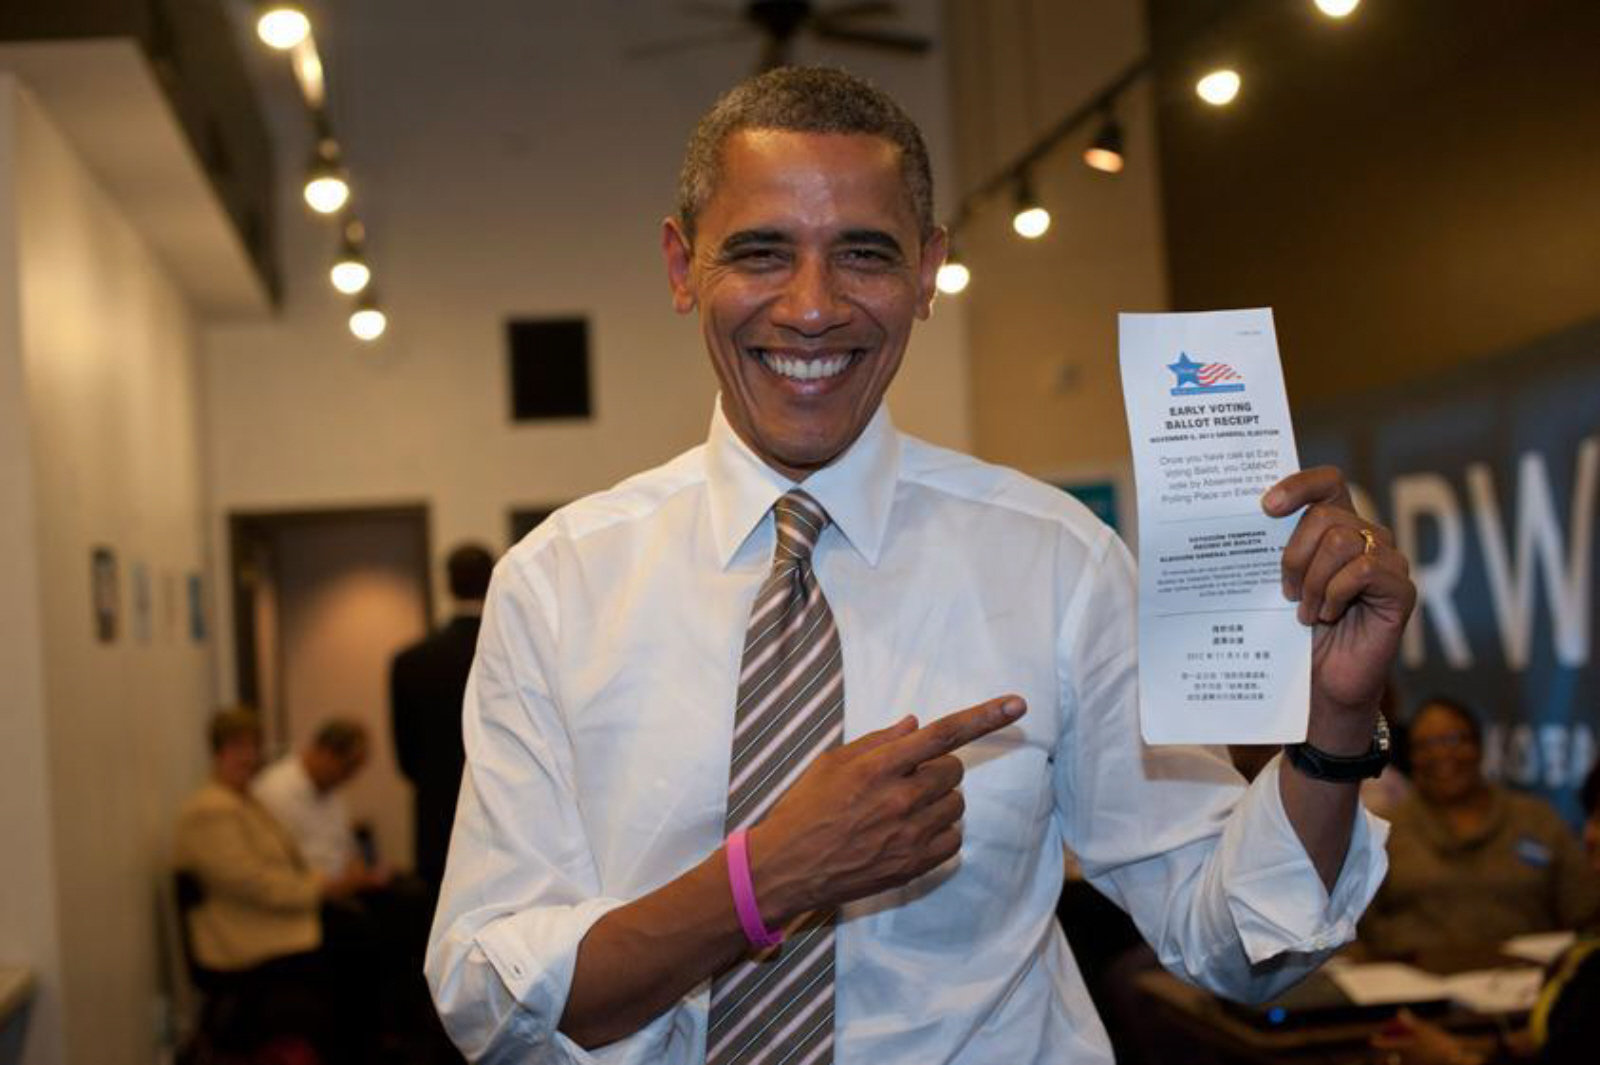 president-obama-1st-sitting-president-early-vote-ballot.jpg